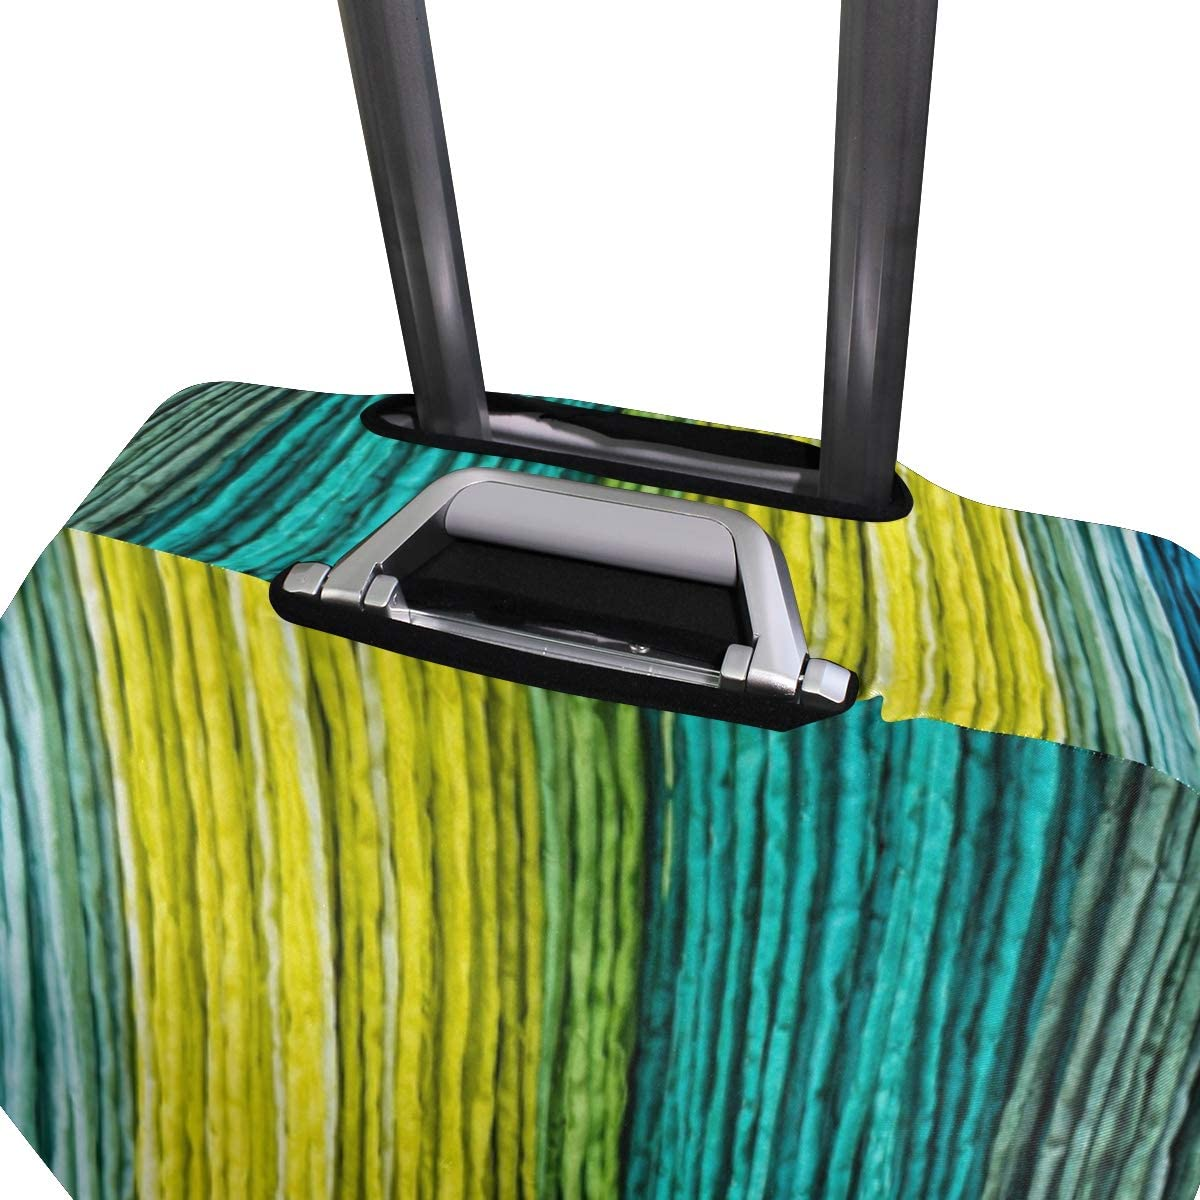 Travel Luggage Cover Multicolored Fabric Texture Background Suitcase Protector Fits 22-24 Inch Washable Baggage Covers